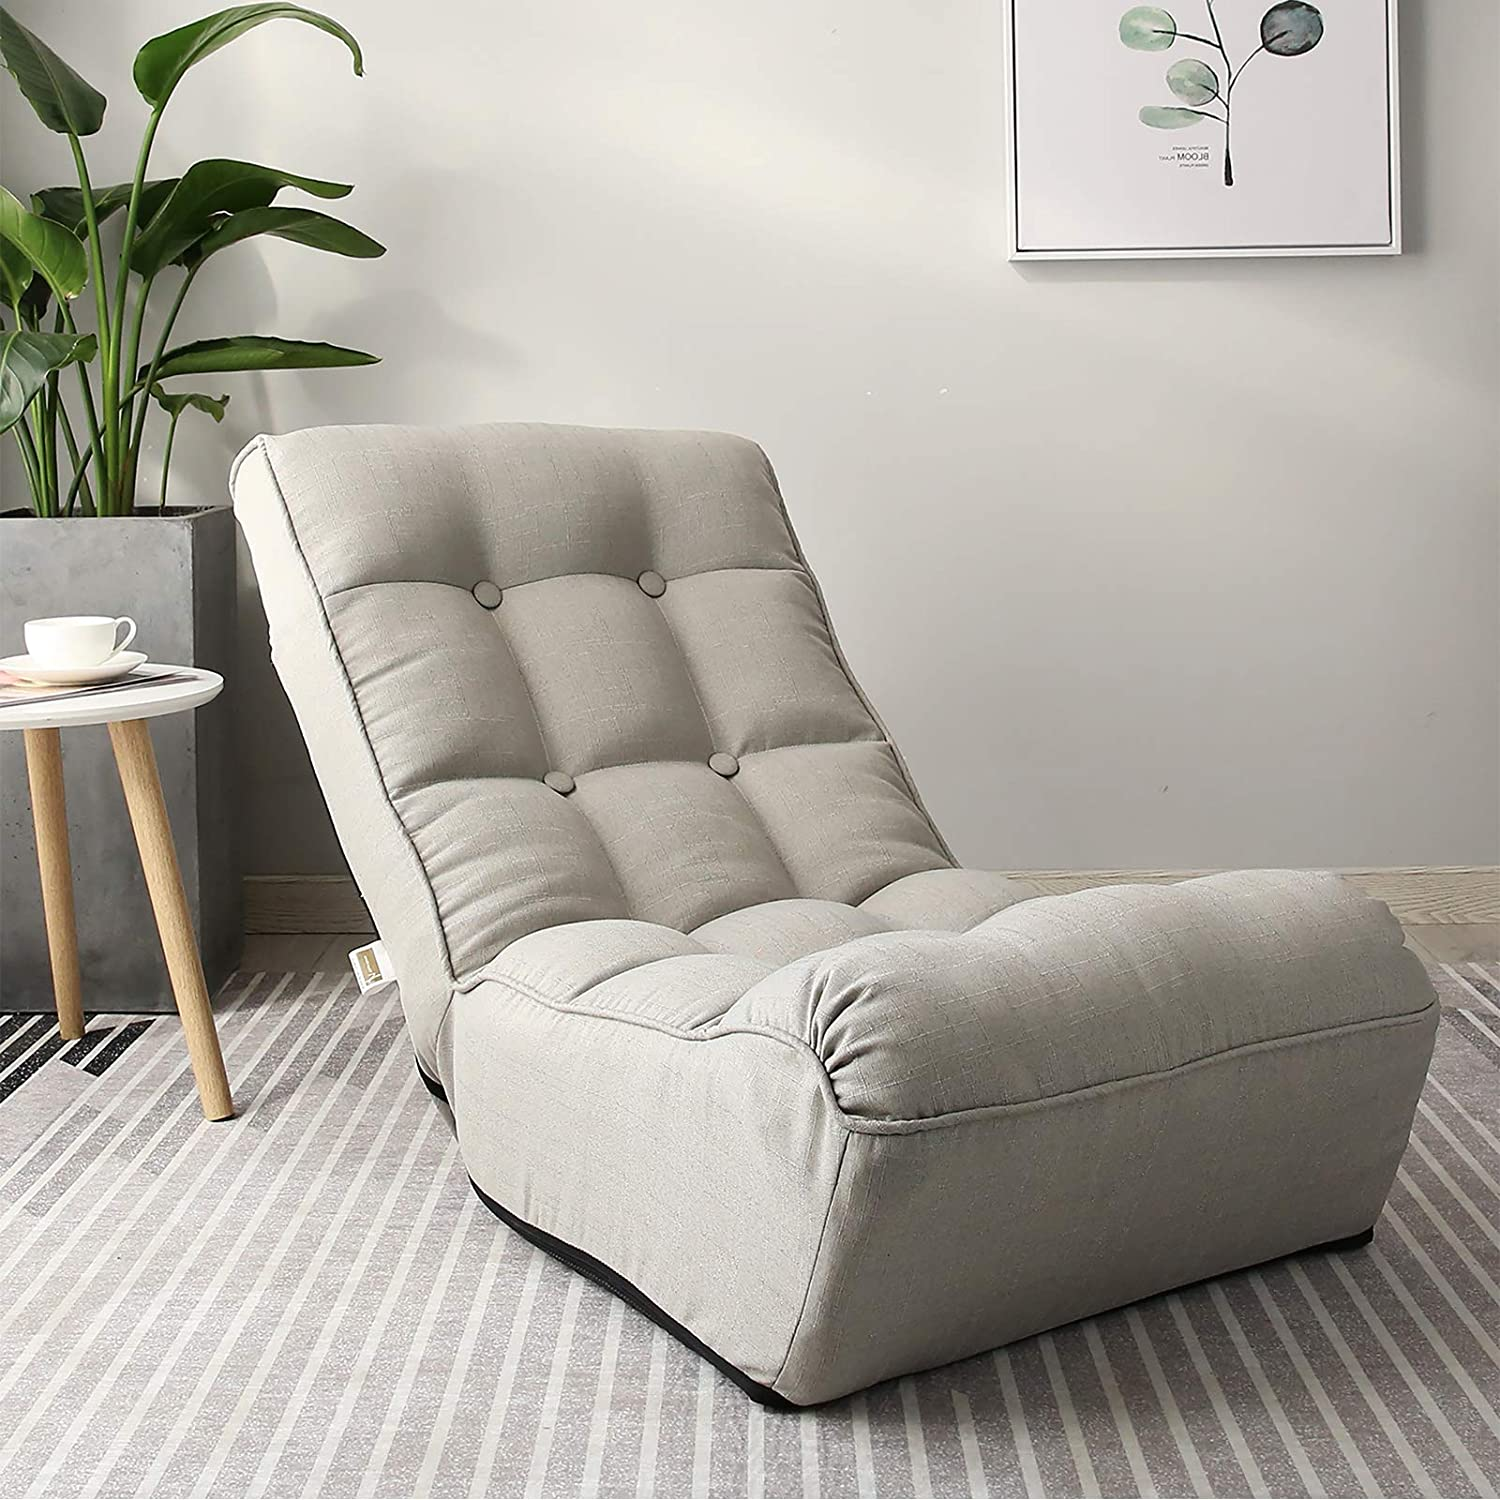 DEPOINTER Chaise Lounge New sales Super-cheap Sofa Floor Lazy Sleep Gaming Chair